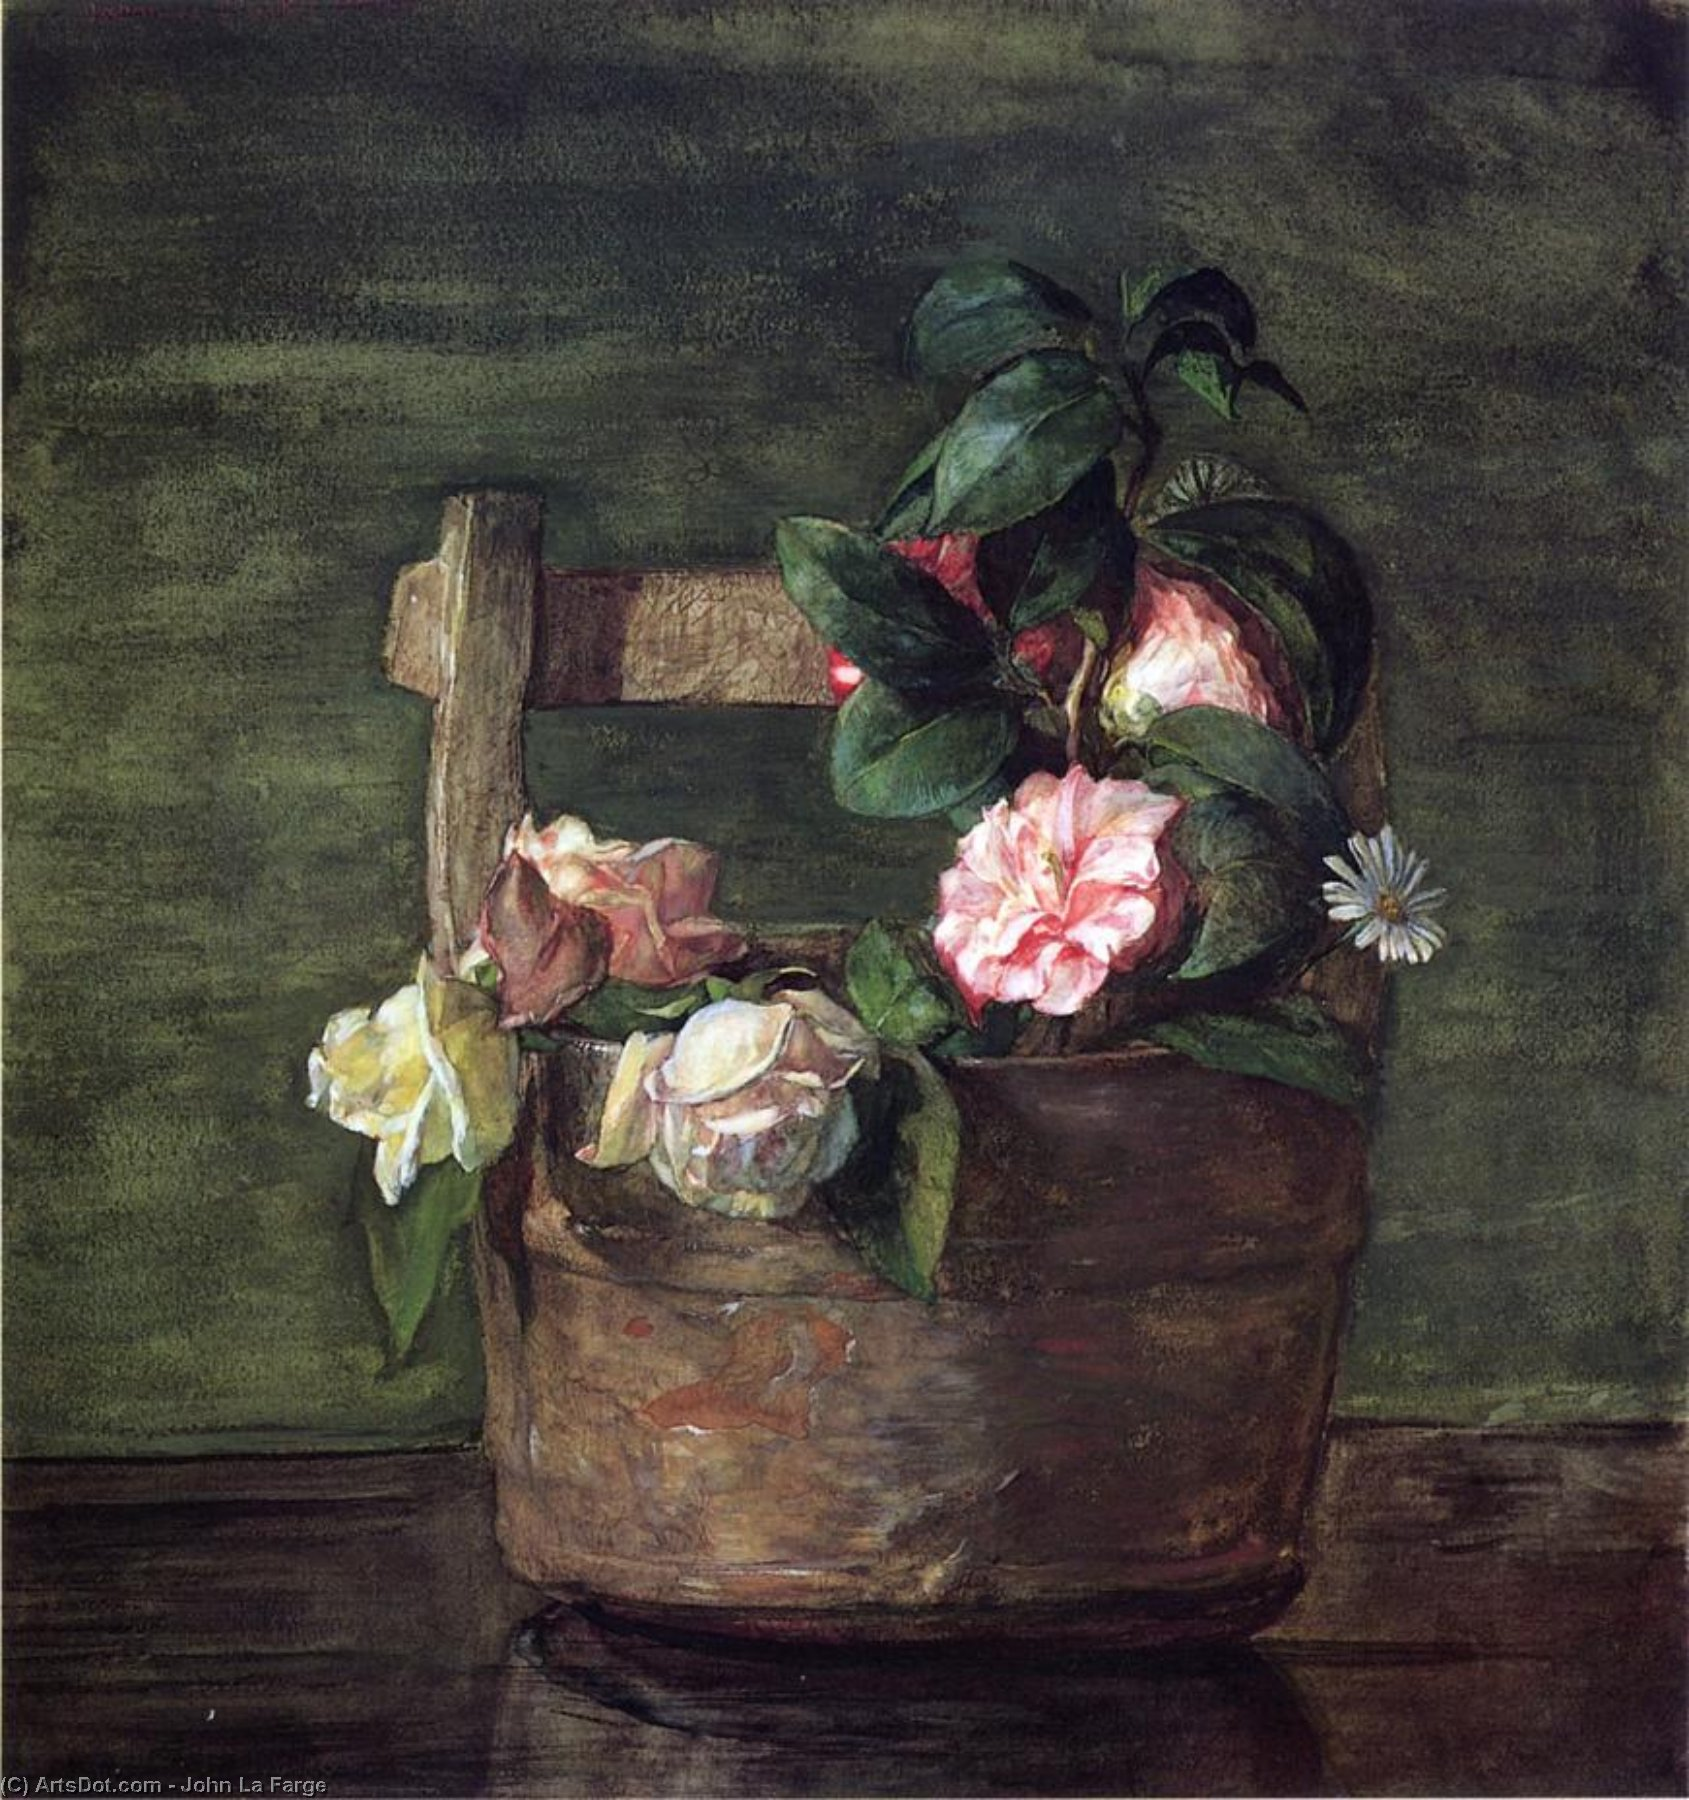 Order Art Reproductions | Camellias and Roses in Japanese Vase of Earthenware with Crackle, 1879 by John La Farge (1835-1910, United States) | ArtsDot.com